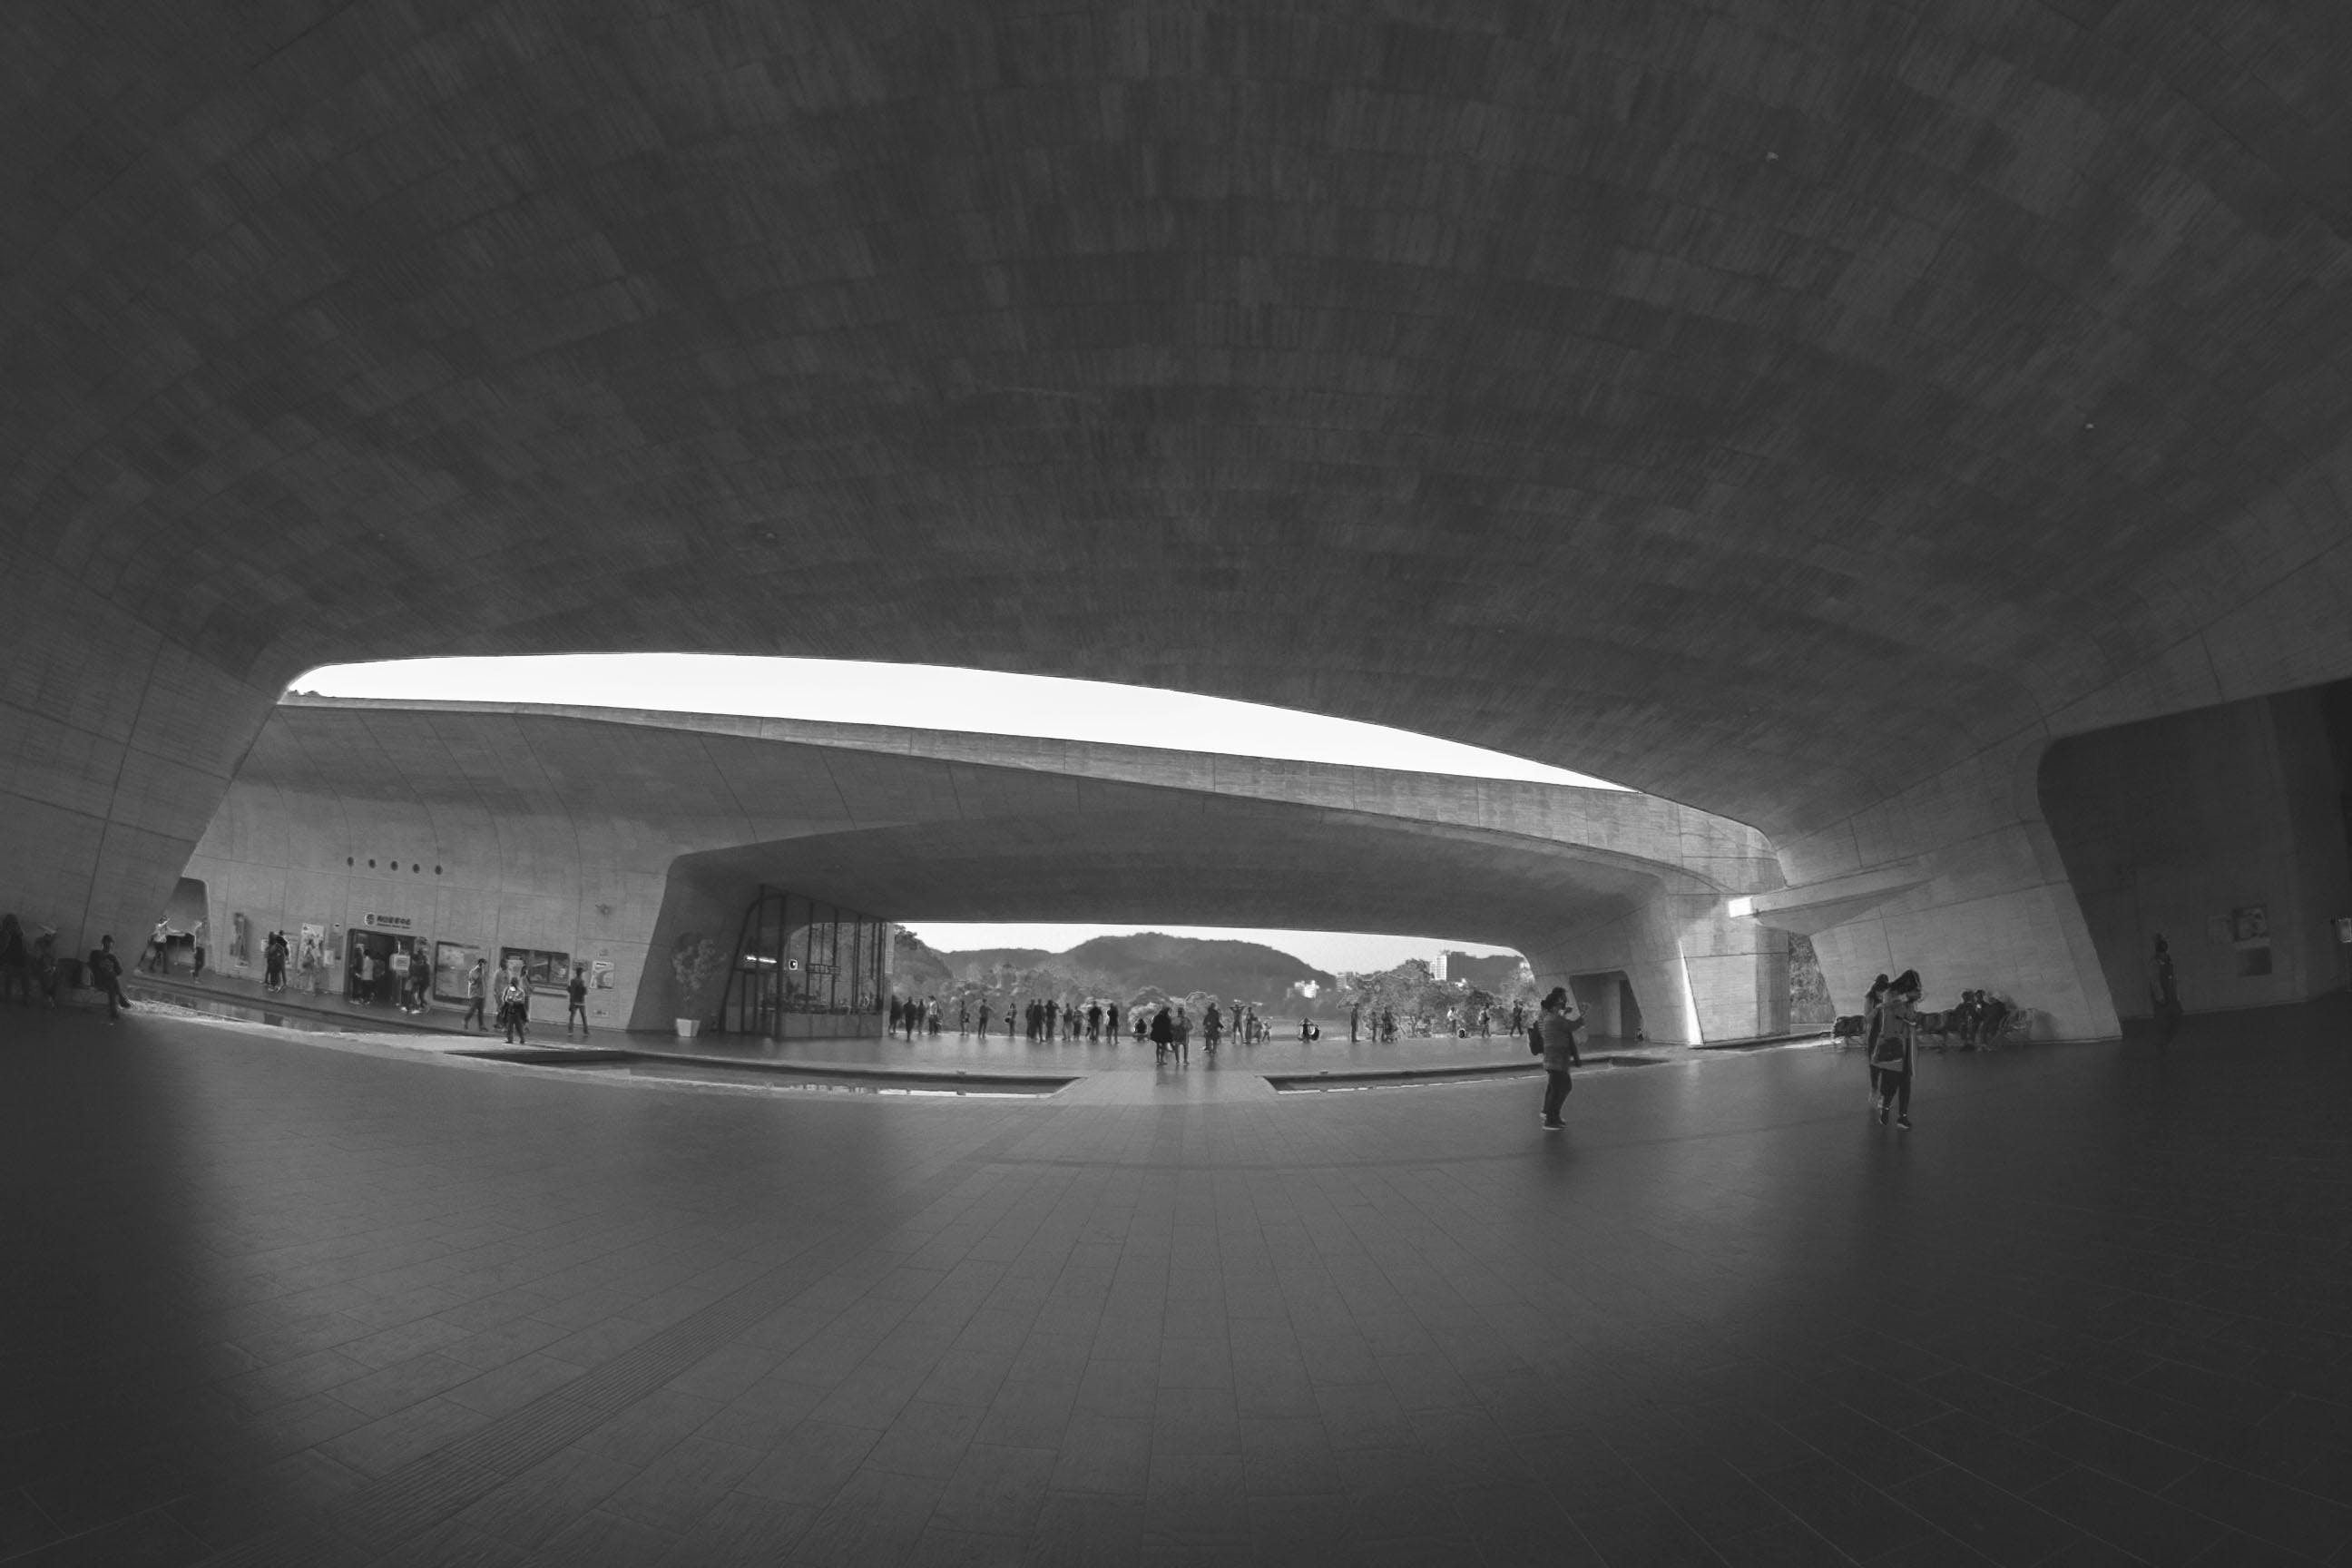 Grayscale Photography of Group of People Under Concrete Structure